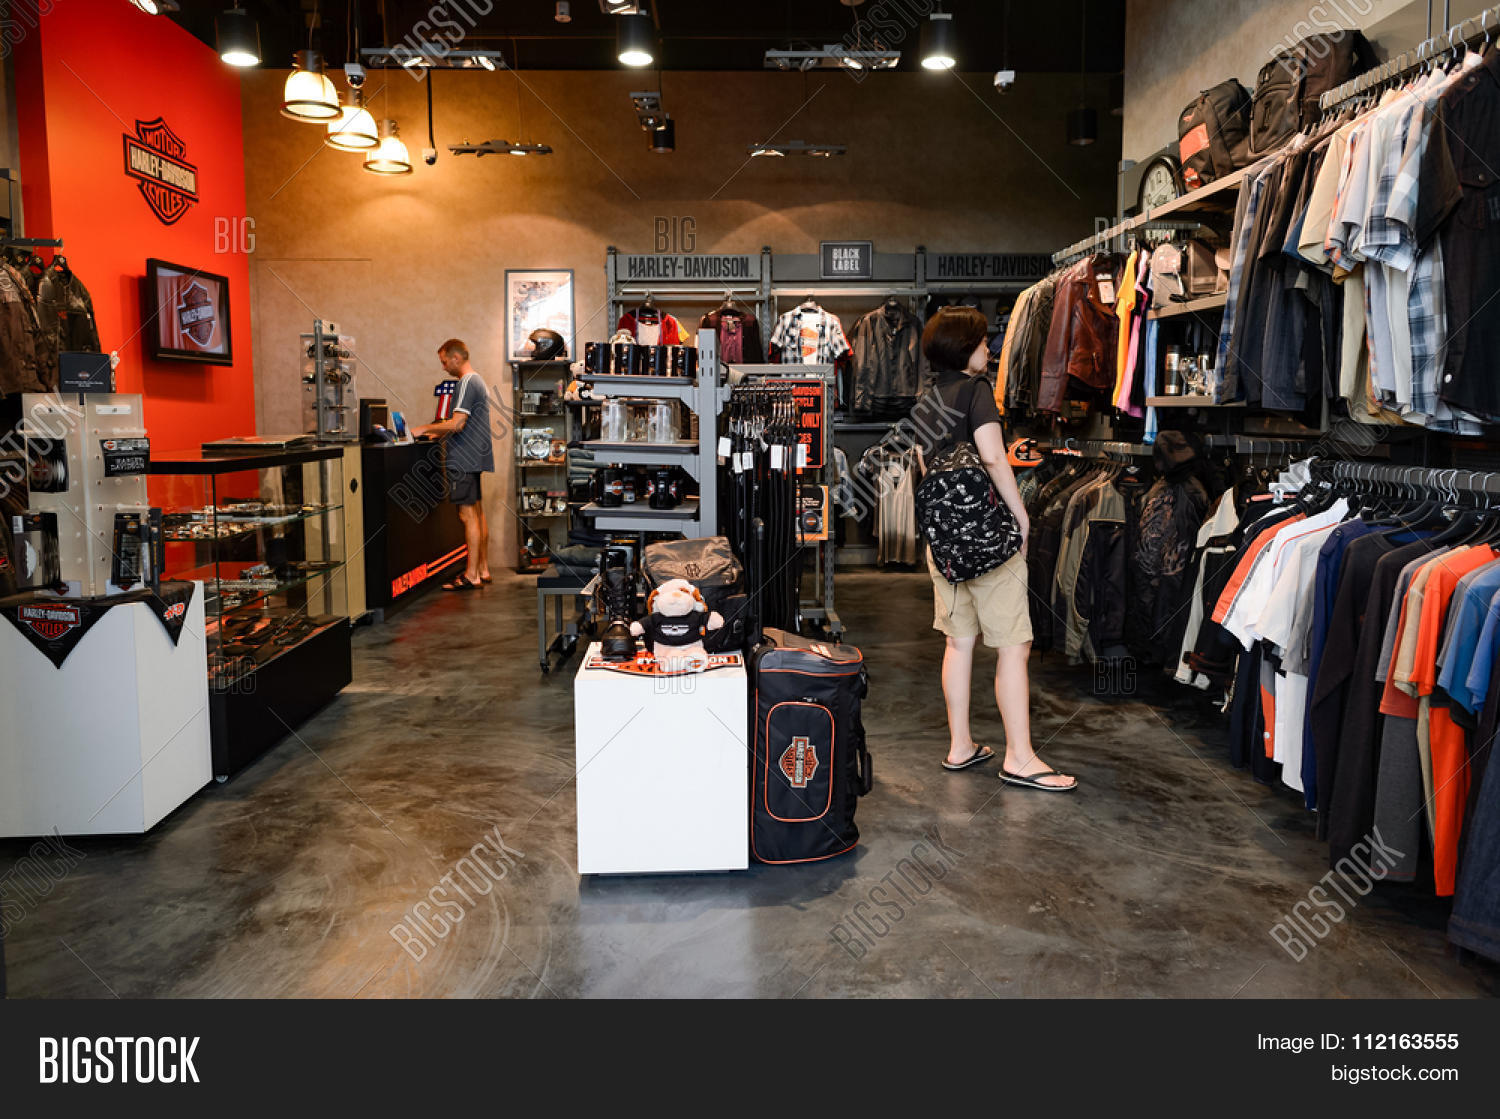 singapore - november 08, 2015: interior of store with harley